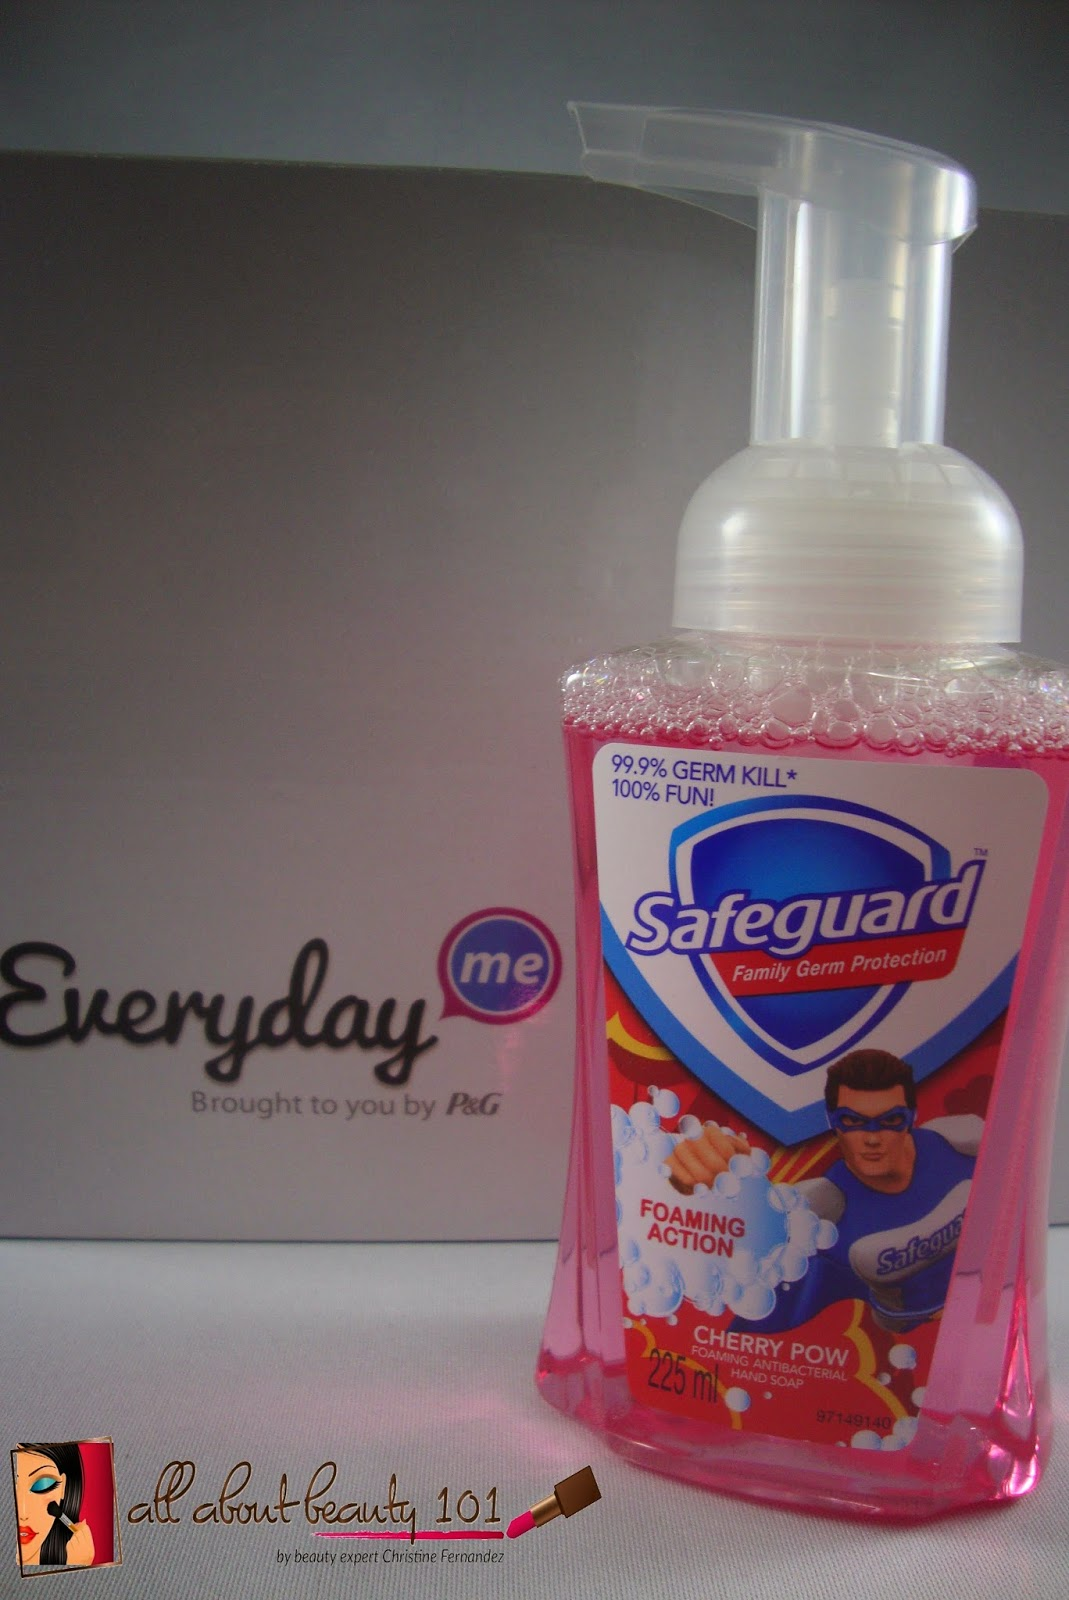 p g everyday electric relay wiring diagram safeguard cherry pow hand soap all about beauty 101